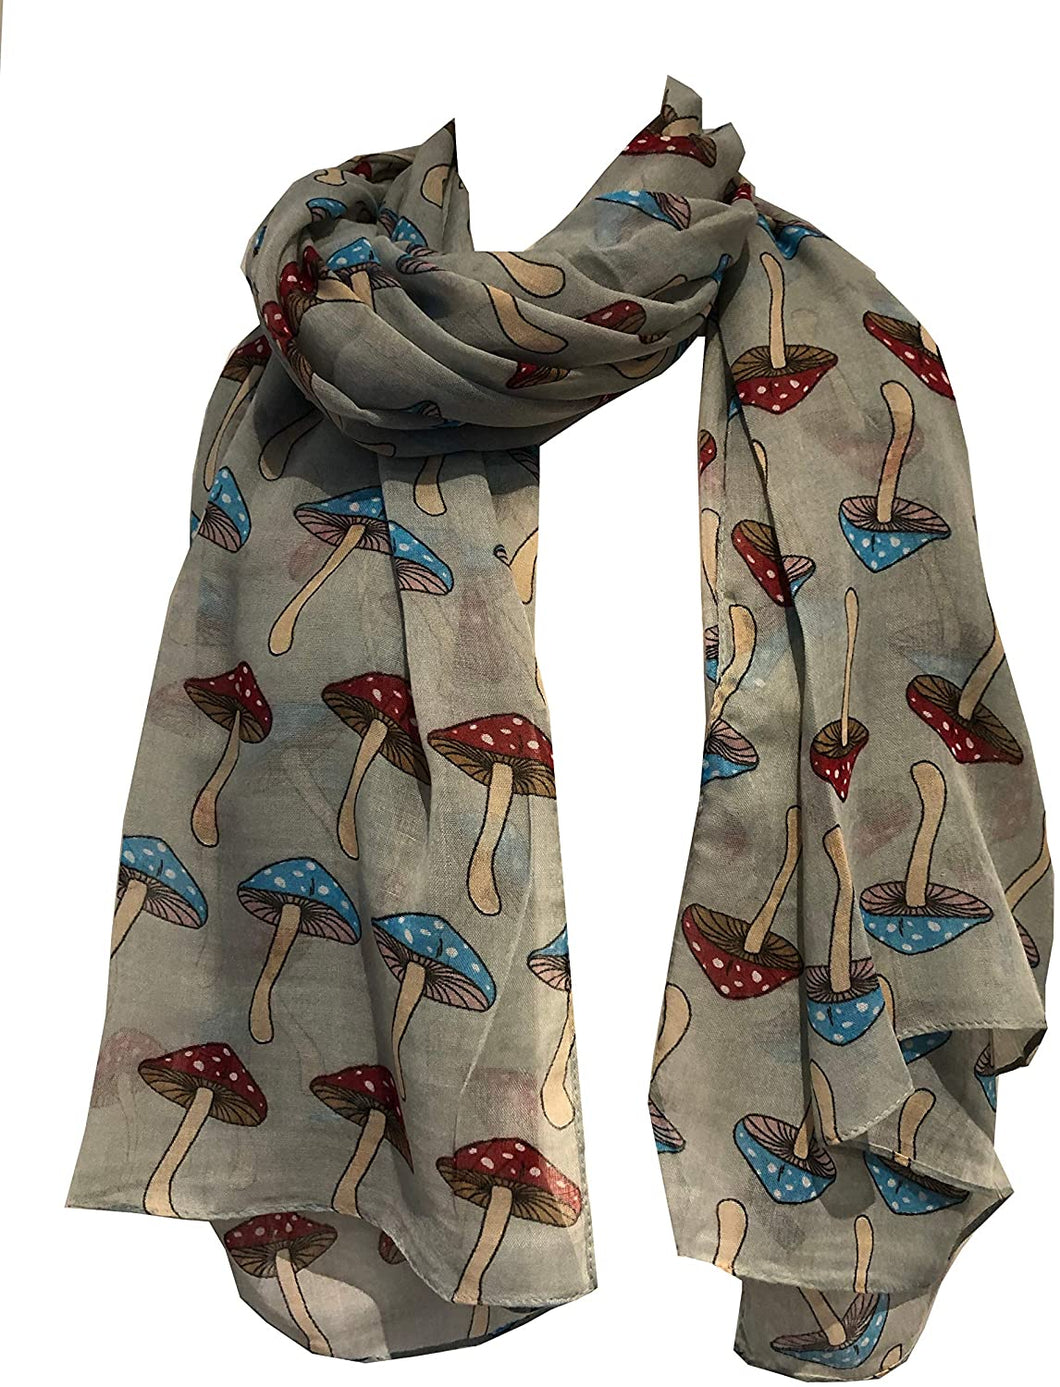 Pamper Yourself Now Green with Colourful Mushroom Design Scarf/wrap Great Present/Gift.